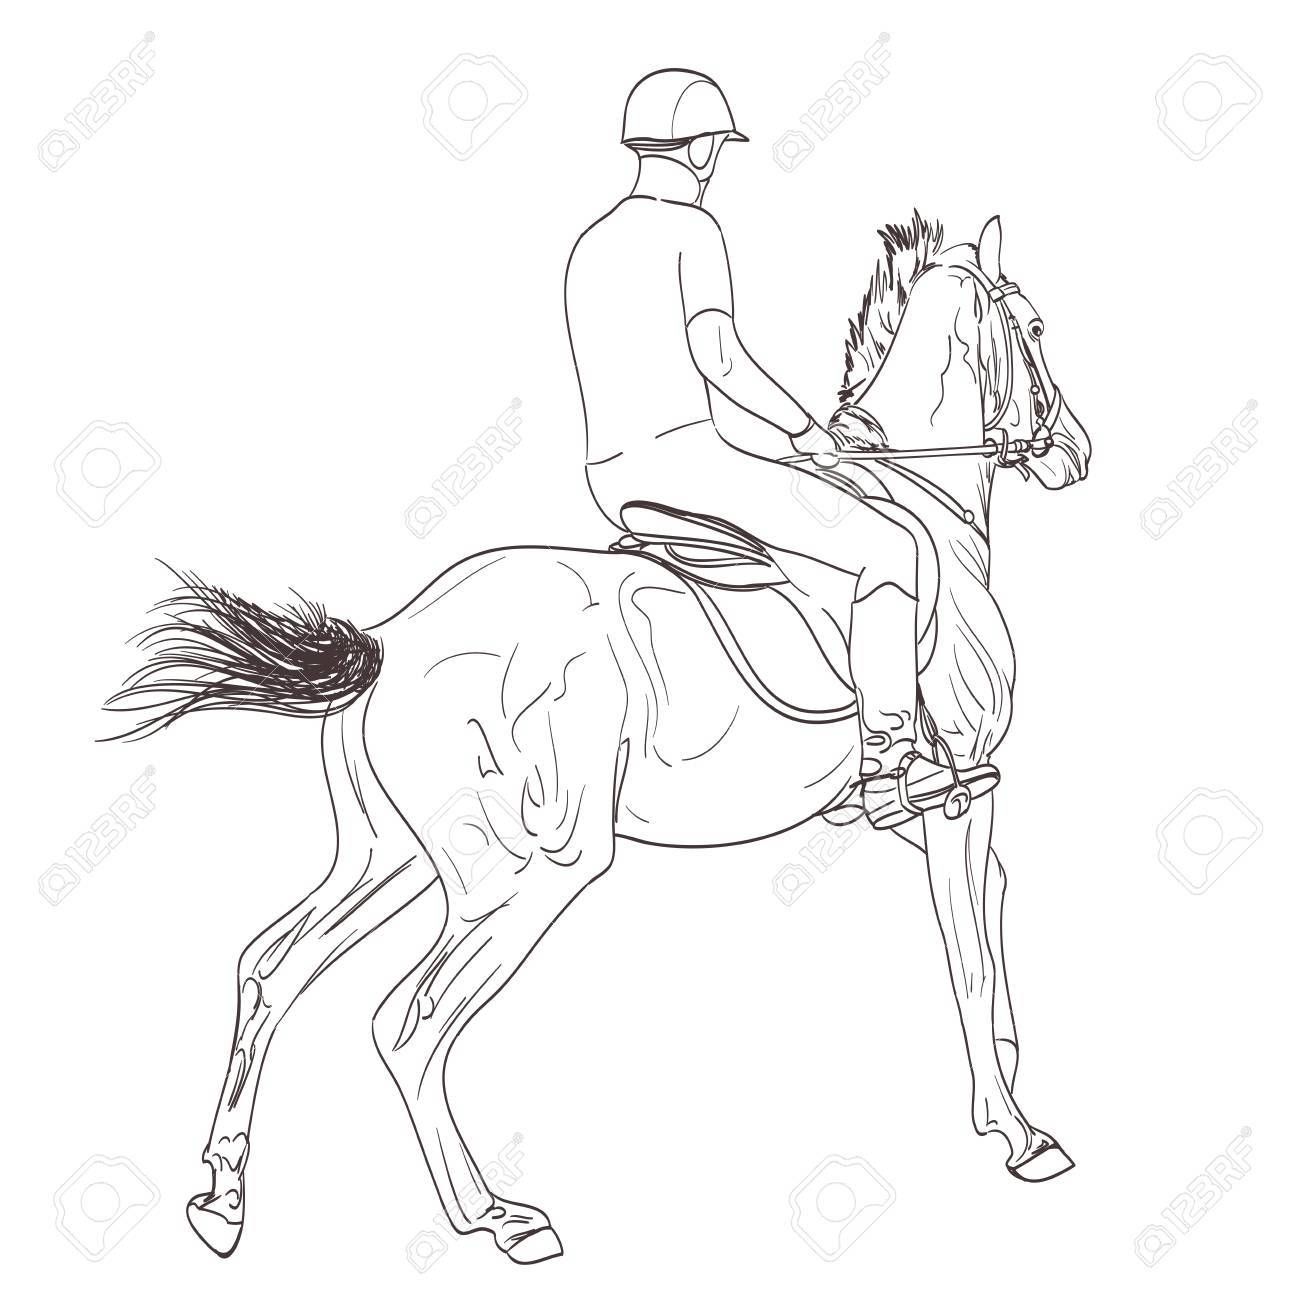 Horse Rider Line Art Hand Drawn Illustration Equestrian Sport Royalty Free Cliparts Vectors And Stock Illustration Image 62142078